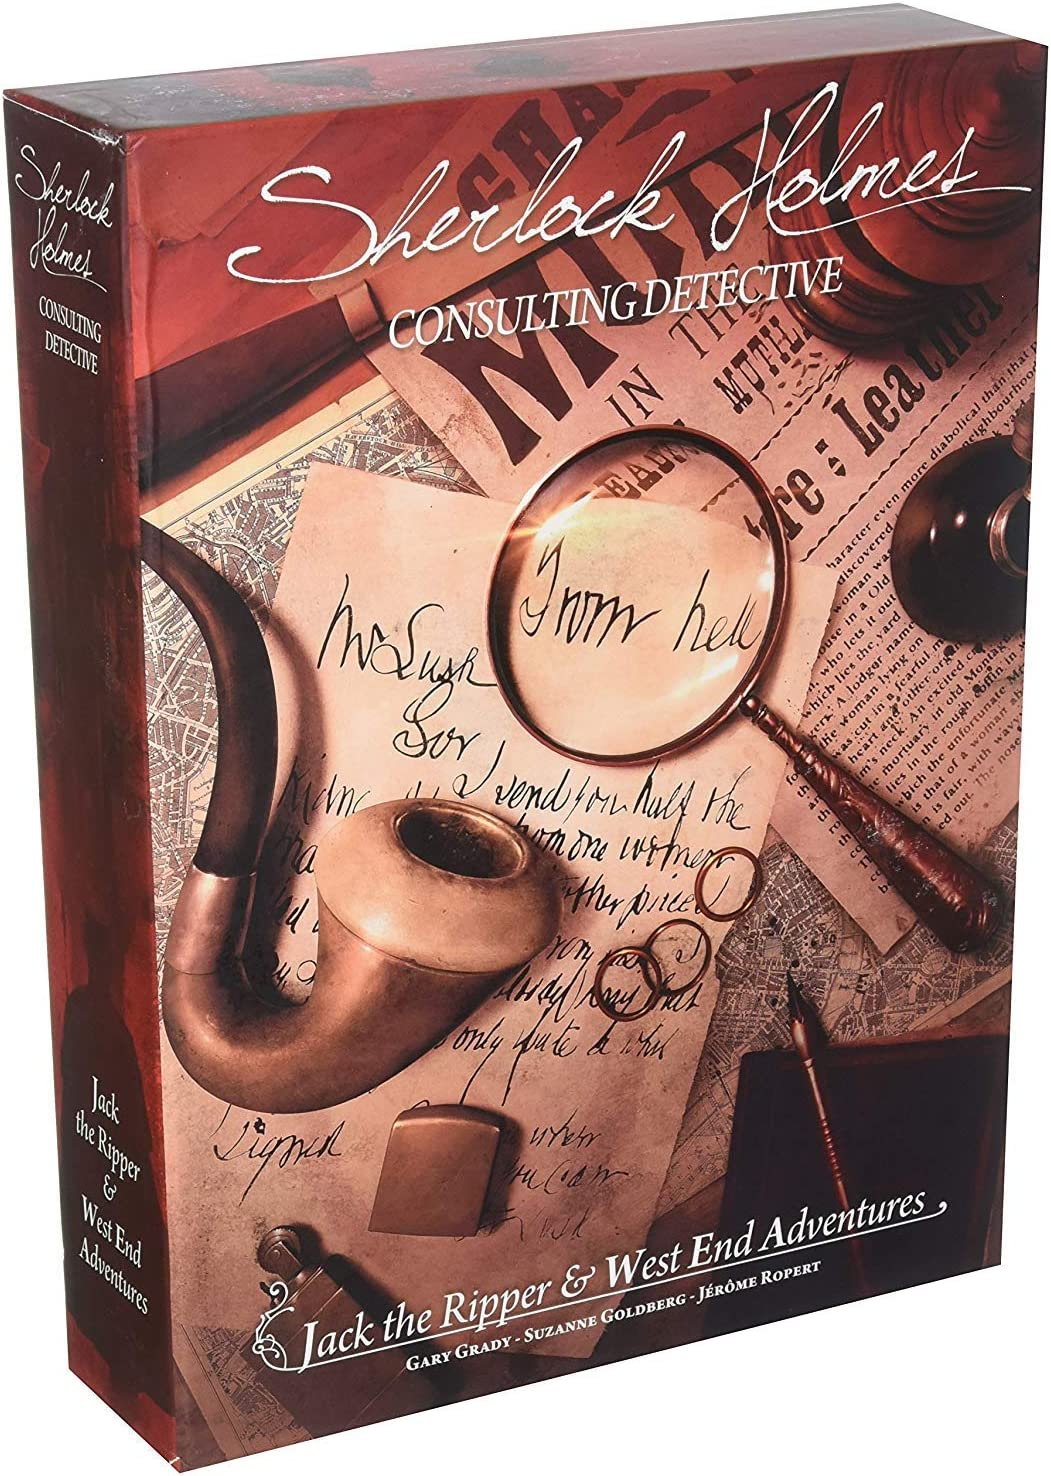 Amazon.com: Sherlock Holmes Consulting: Detective Jack the Ripper & West  End Adventures Strategy Board Game: Toys & Games